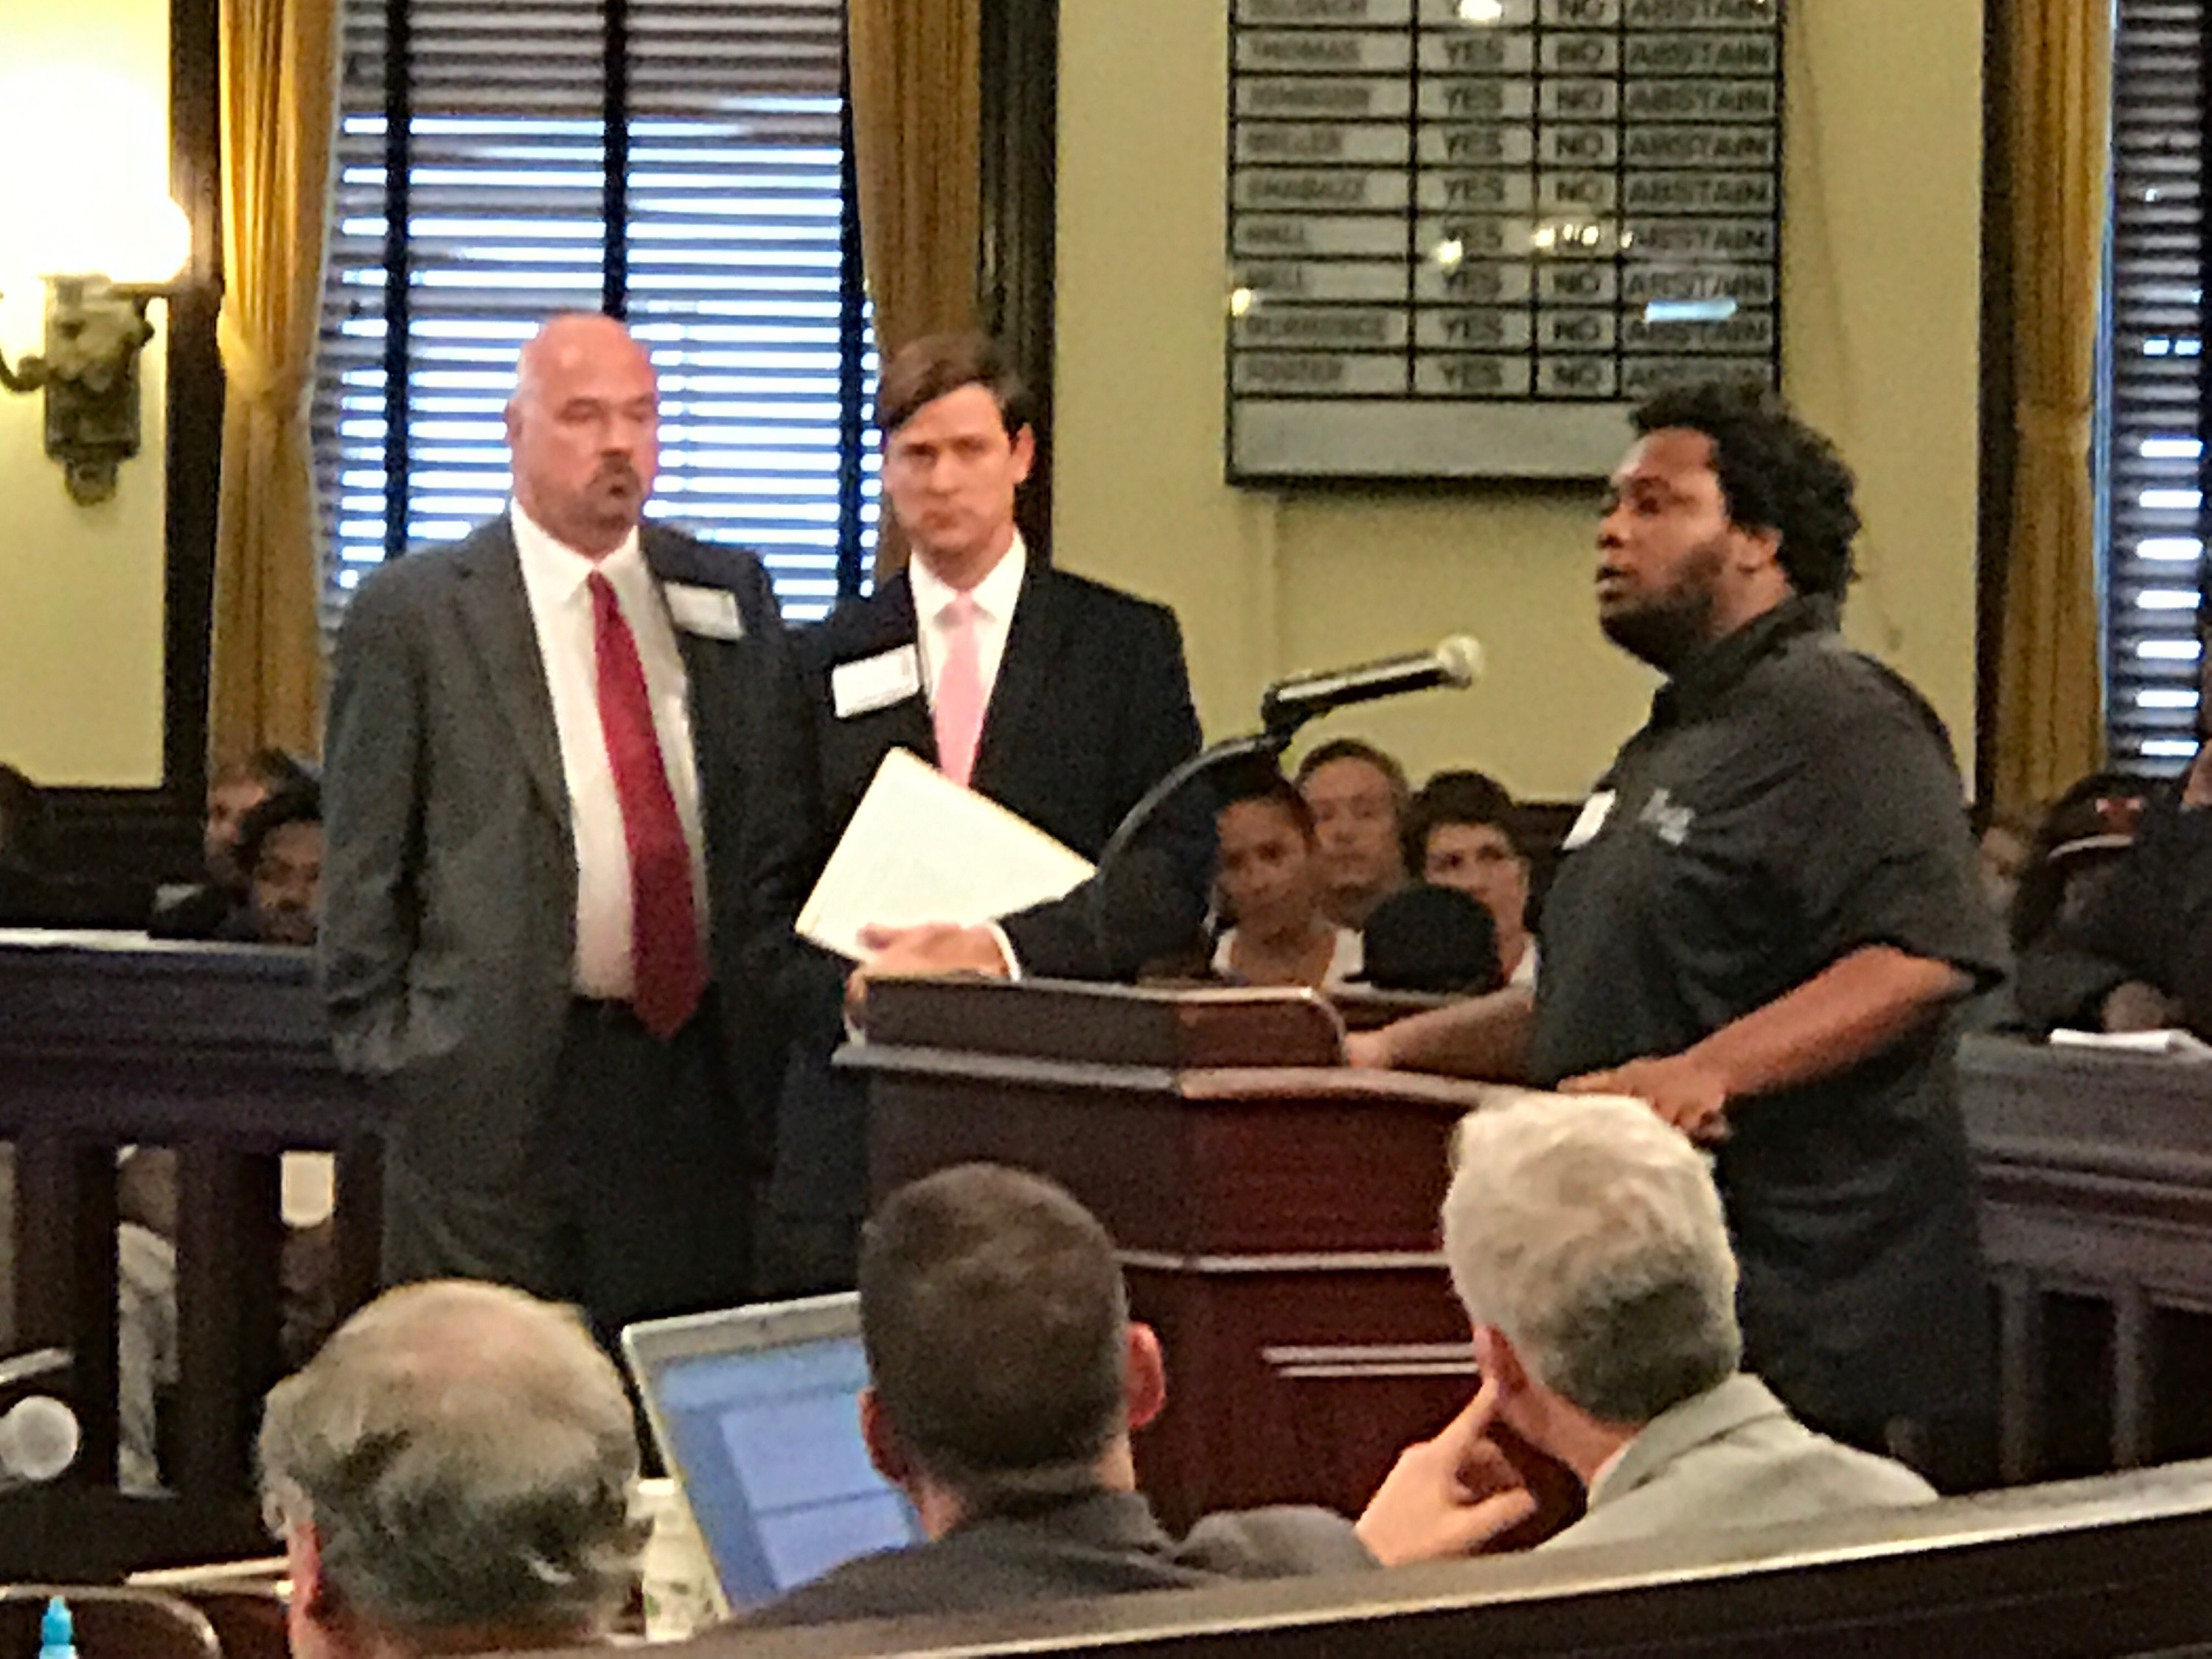 The Stage On Bay owner Charlie Schmitt stands with attorney Will Claiborne as West Savannah resident Charles Brown speaks in support of the project at today's City Council meeting.